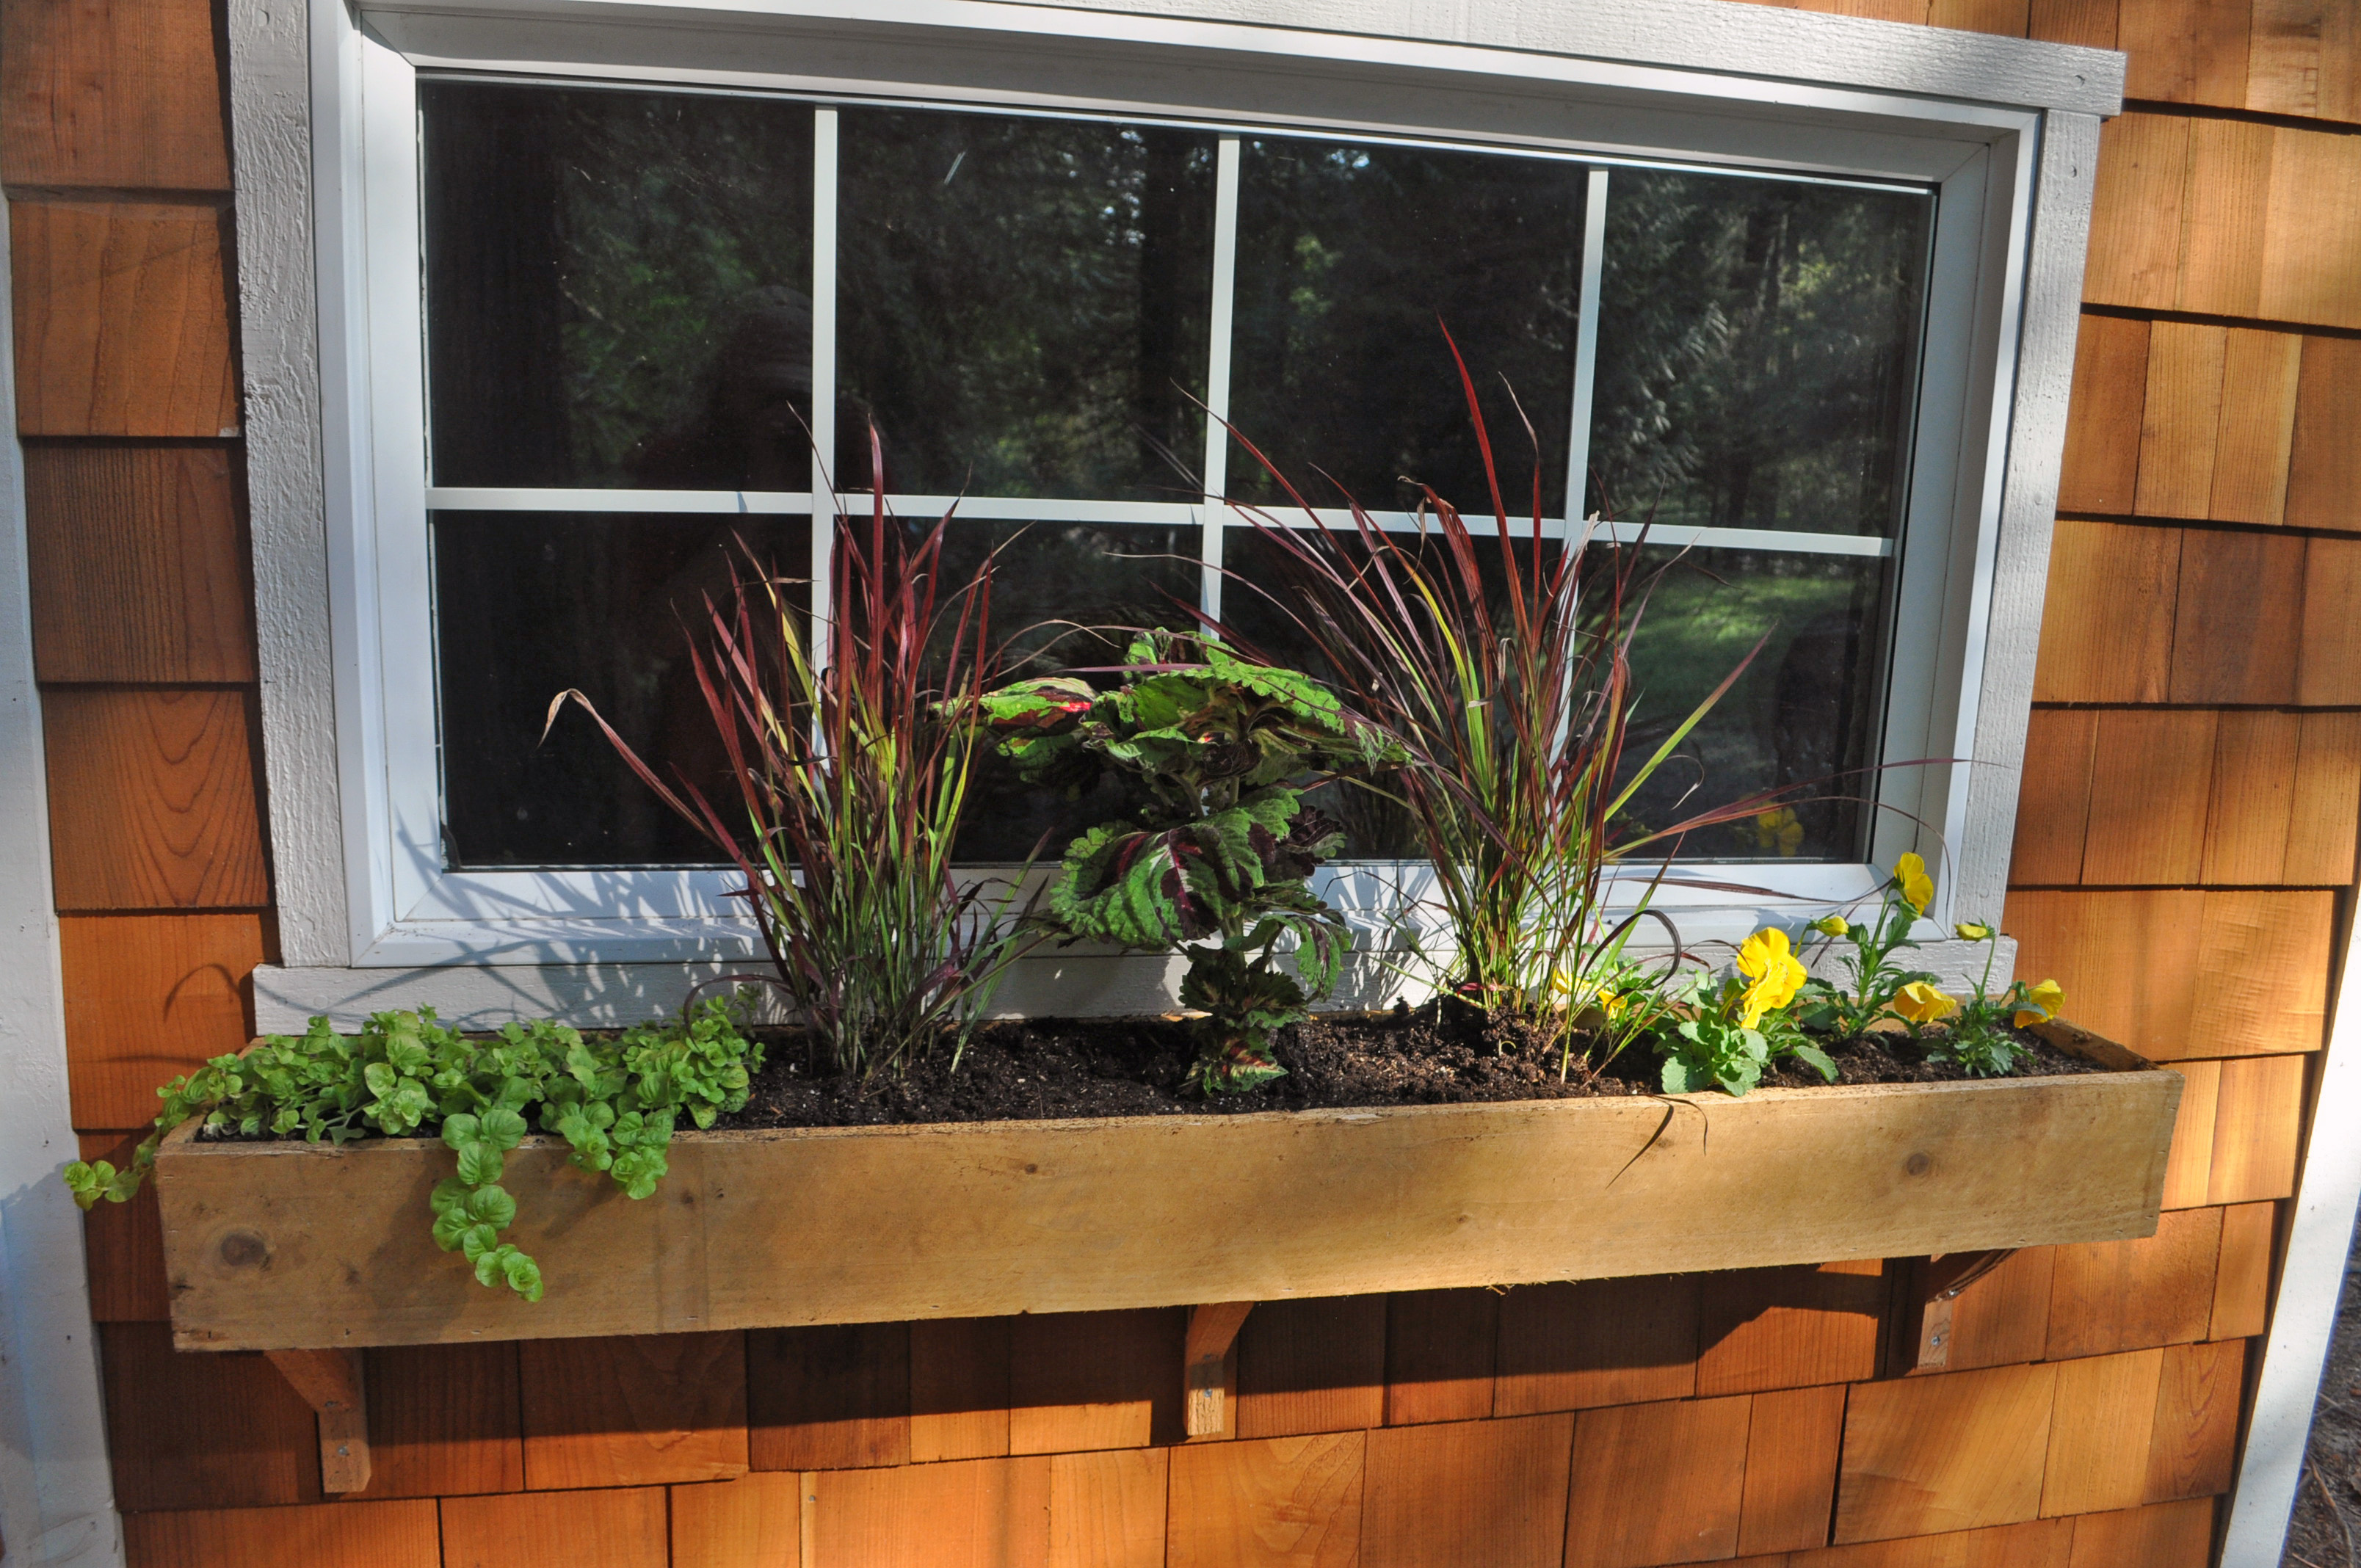 Diy Garden Window Plans No Space For A Garden 8 Ways To Grow Plants In Even The